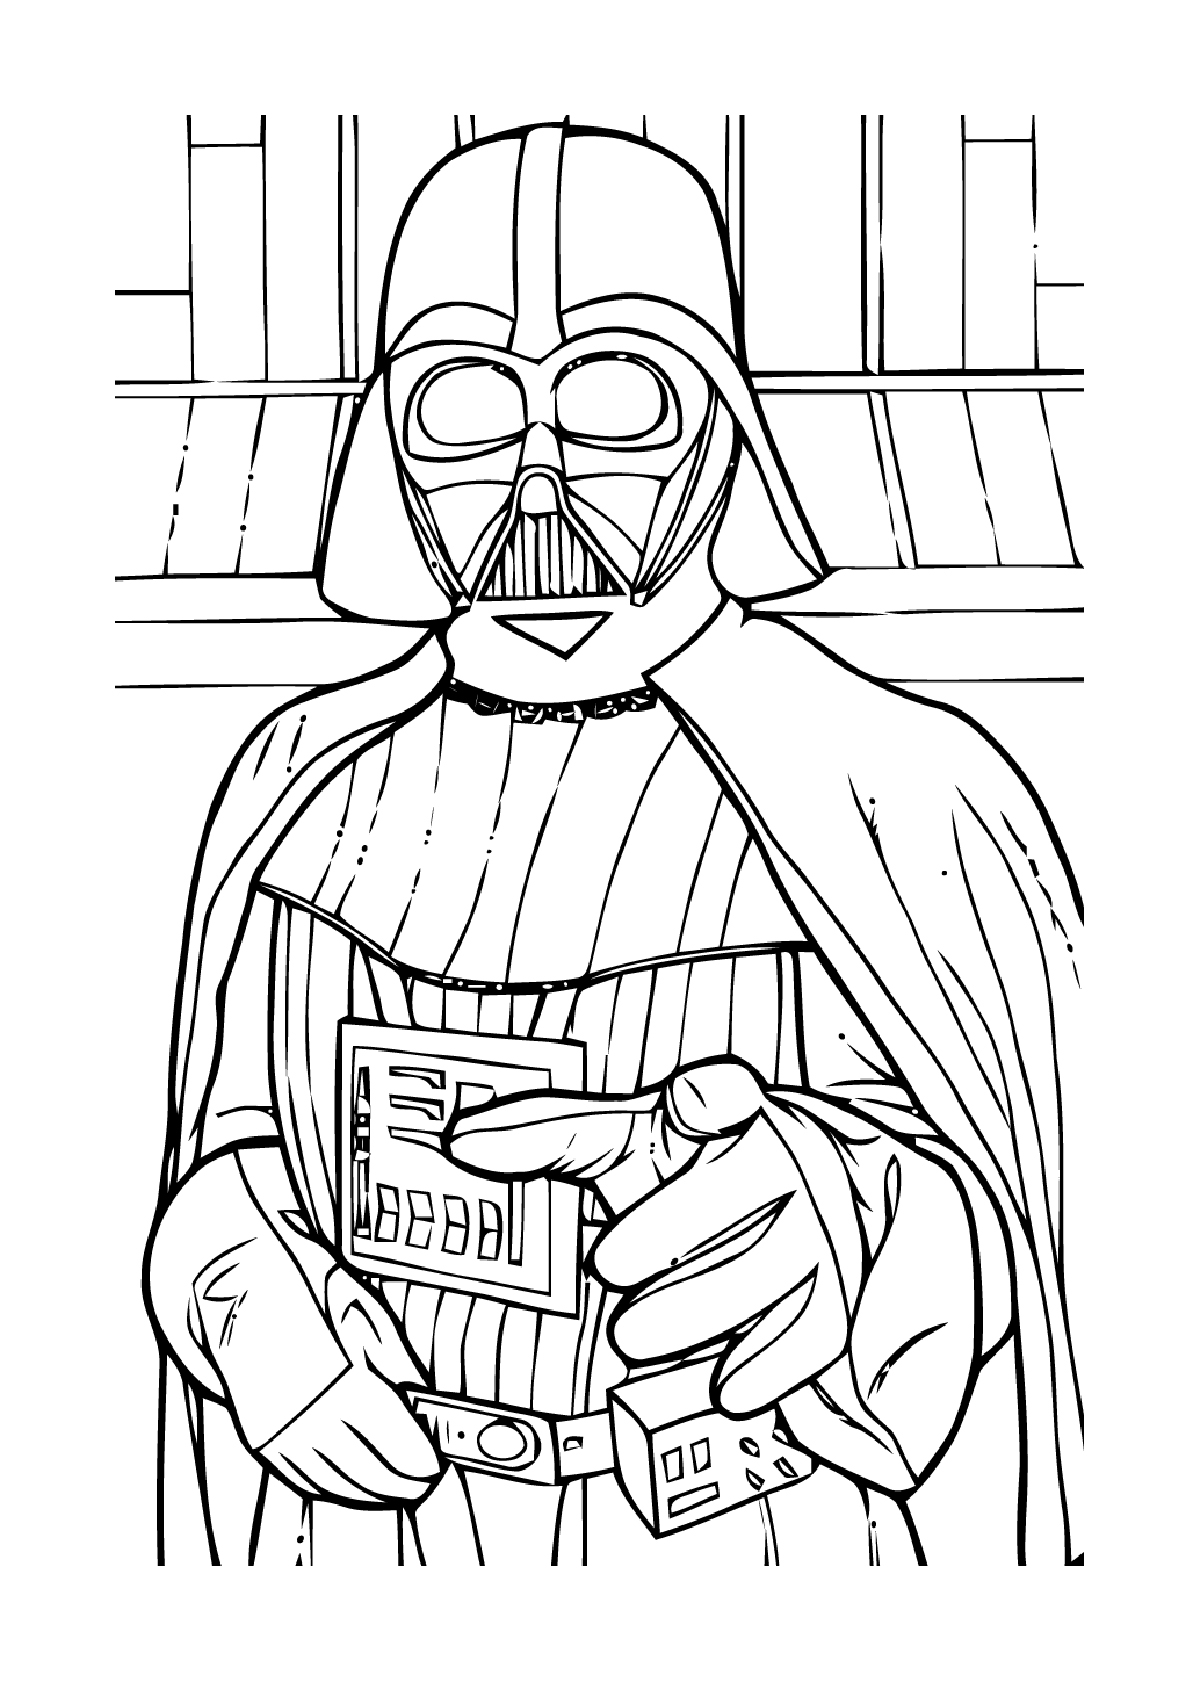 Coloriage star wars capitaine rex - Dessin a colorier star wars ...